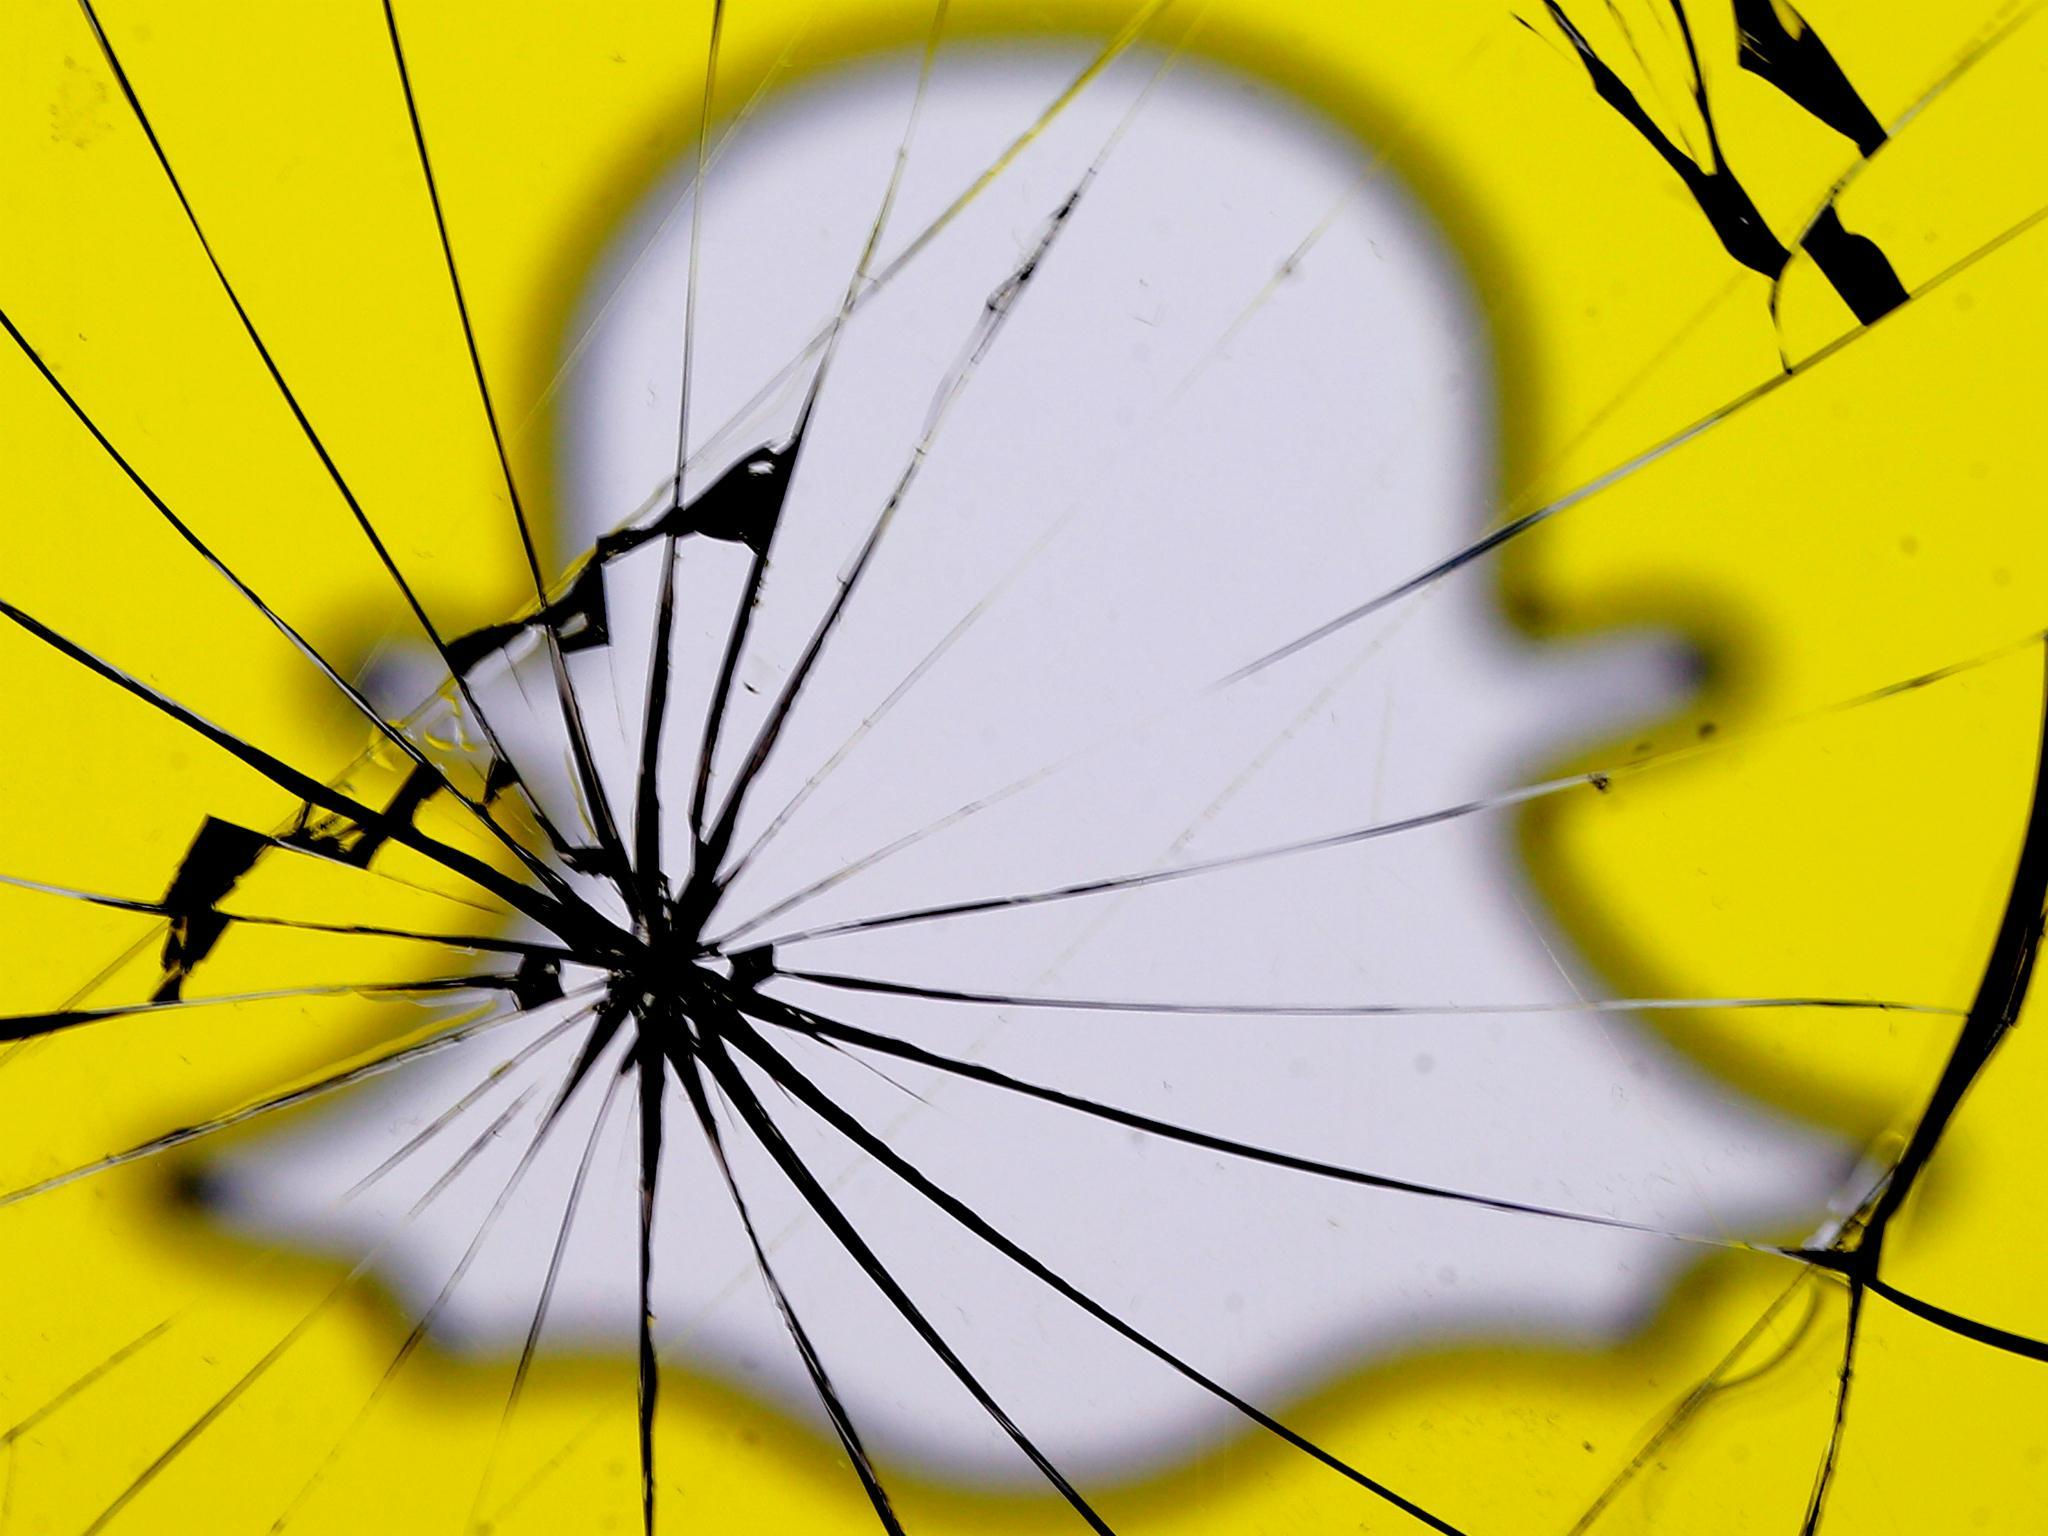 Snapchat Update Slammed By Users Who Say The Redesigned App